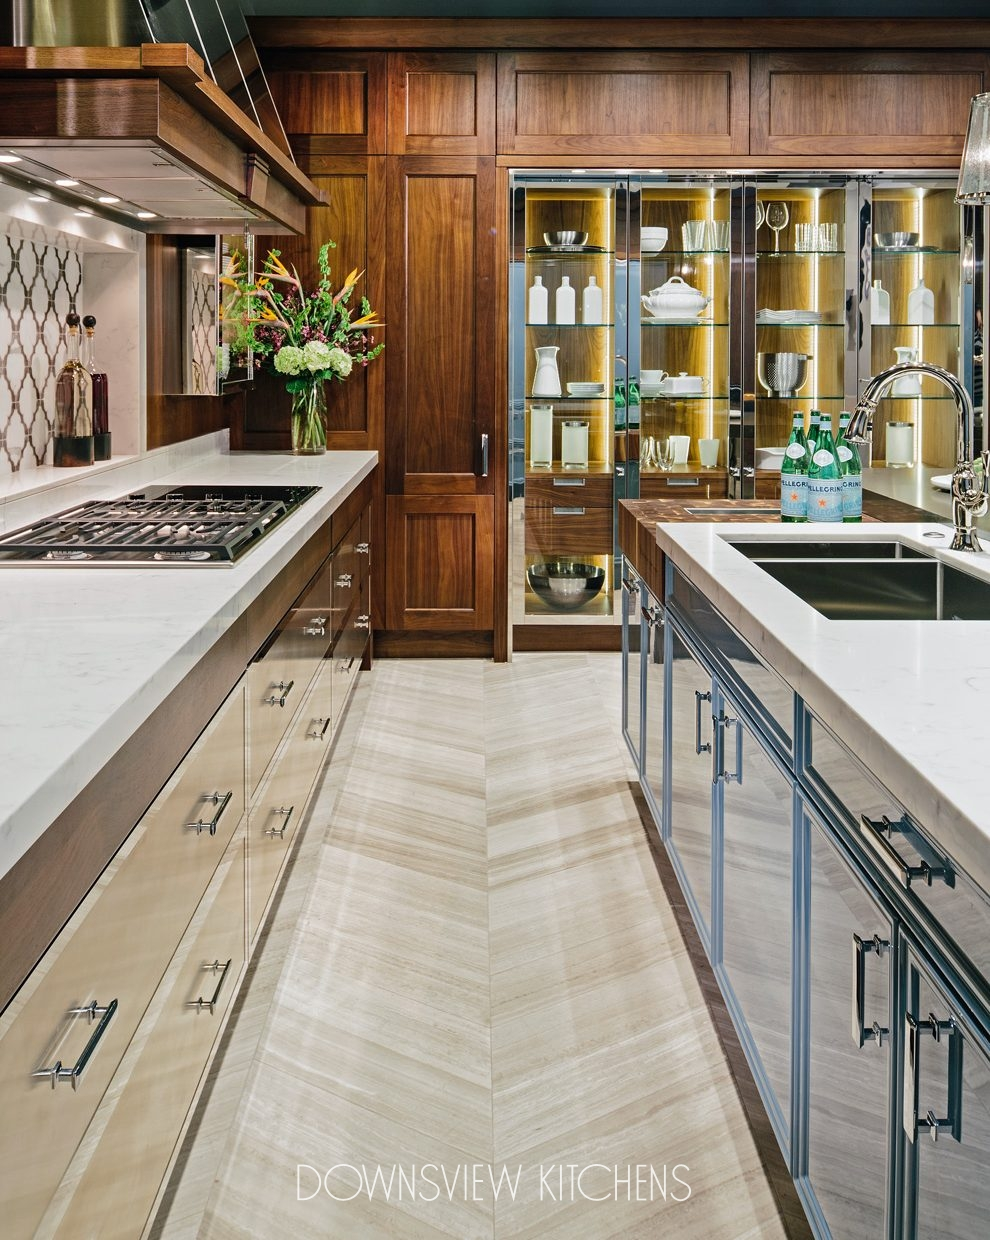 Reflective Vision Downsview Kitchens And Fine Custom Cabinetry Manufacturers Of Custom